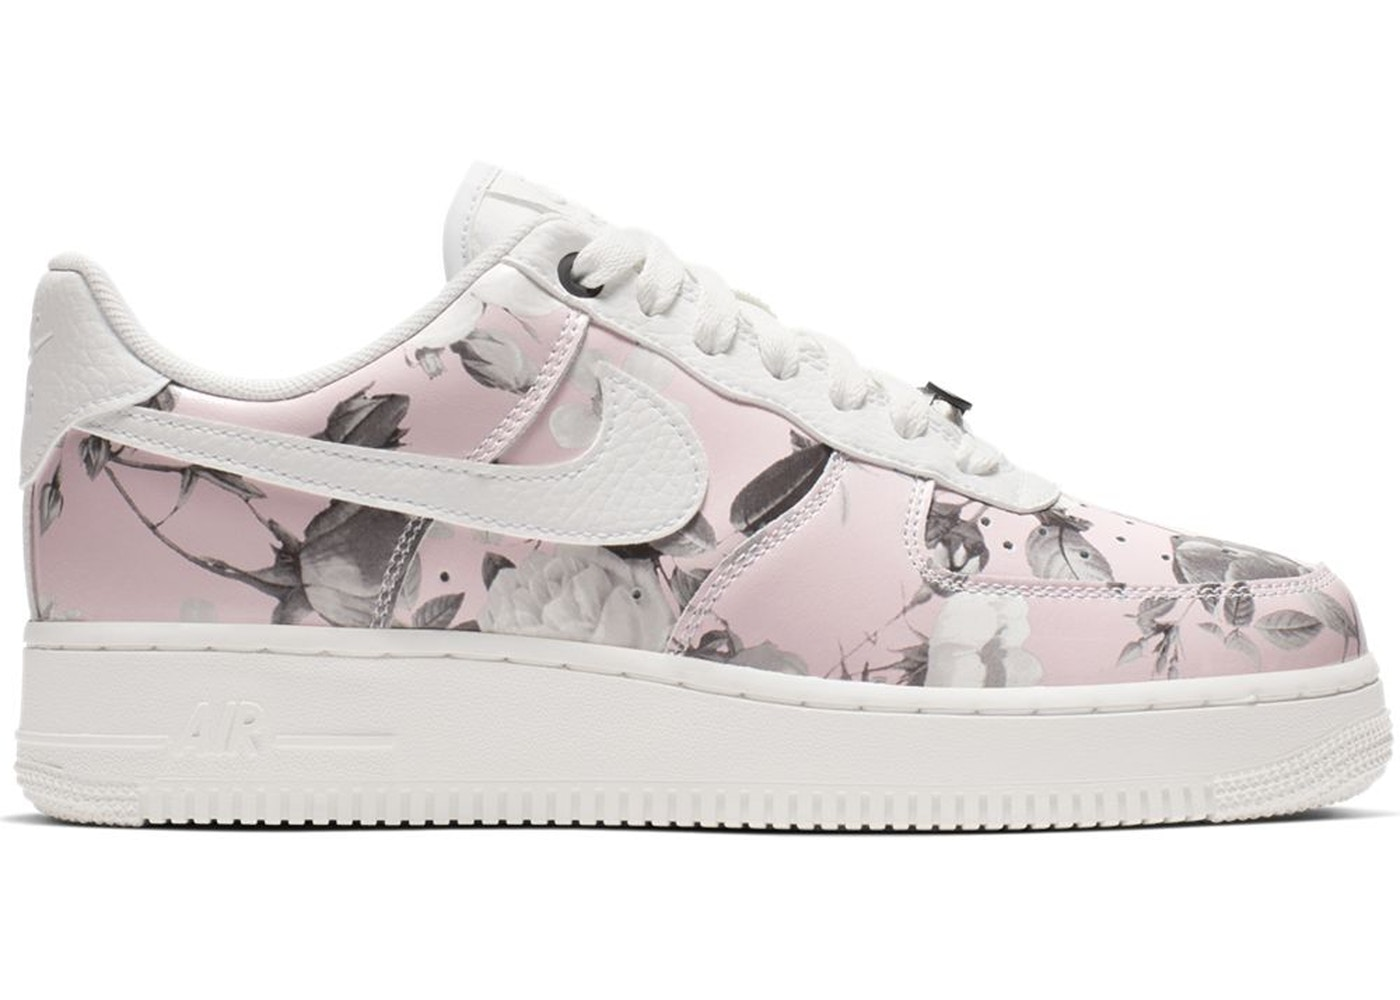 2019 Nike Women's Air Force 1 Low Floral Rose White To Buy